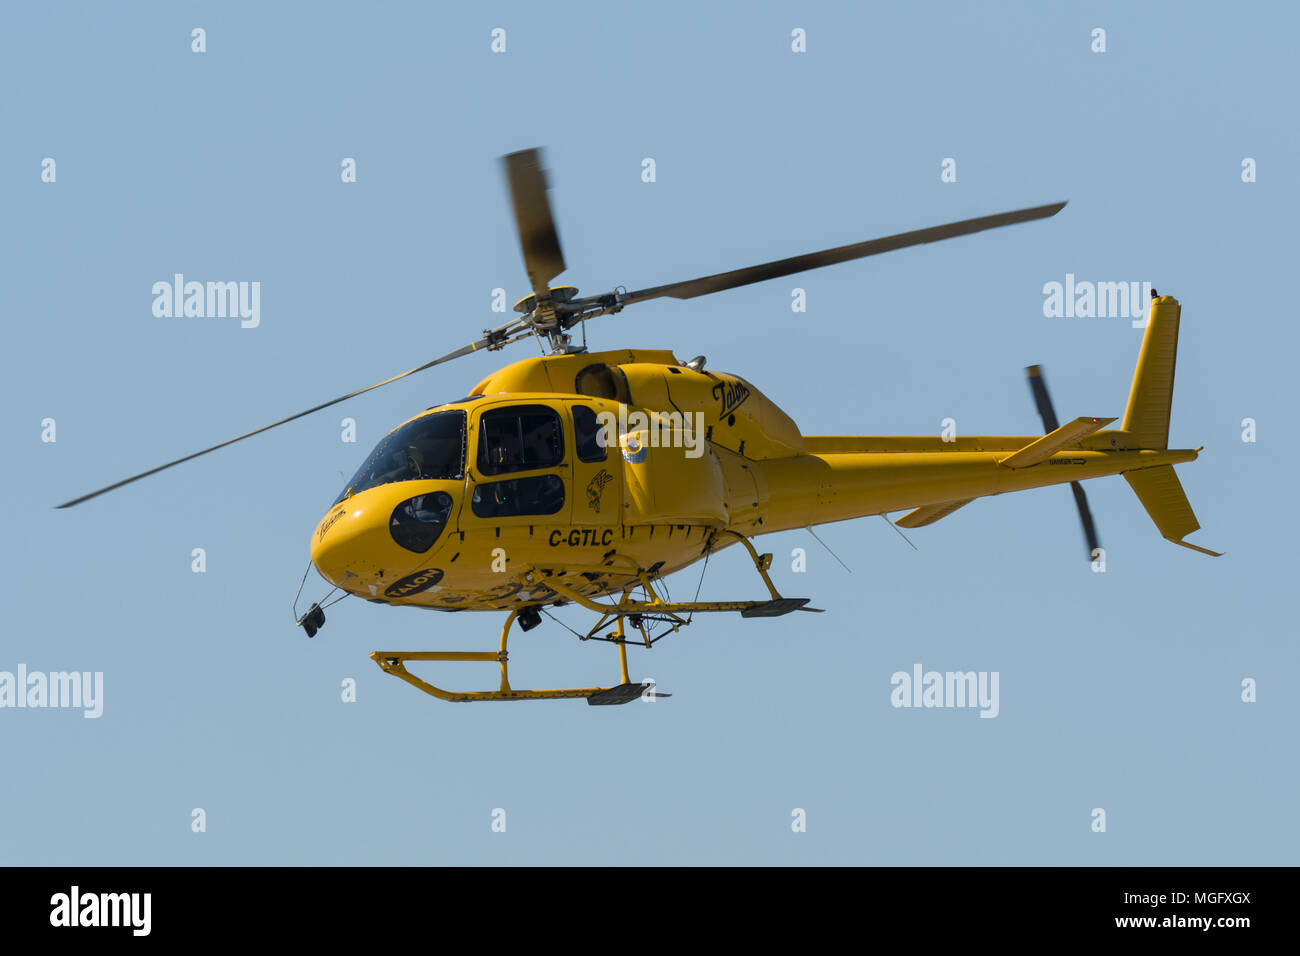 Richmond, British Columbia, Canada. 27th Apr, 2018. A Eurocopter AS355 Ecureuil 2 Twinstar helicopter (C-GTLC) belonging to Talon Helicopters Ltd. departs from Vancouver International Airport. Credit: Bayne Stanley/ZUMA Wire/Alamy Live News - Stock Image